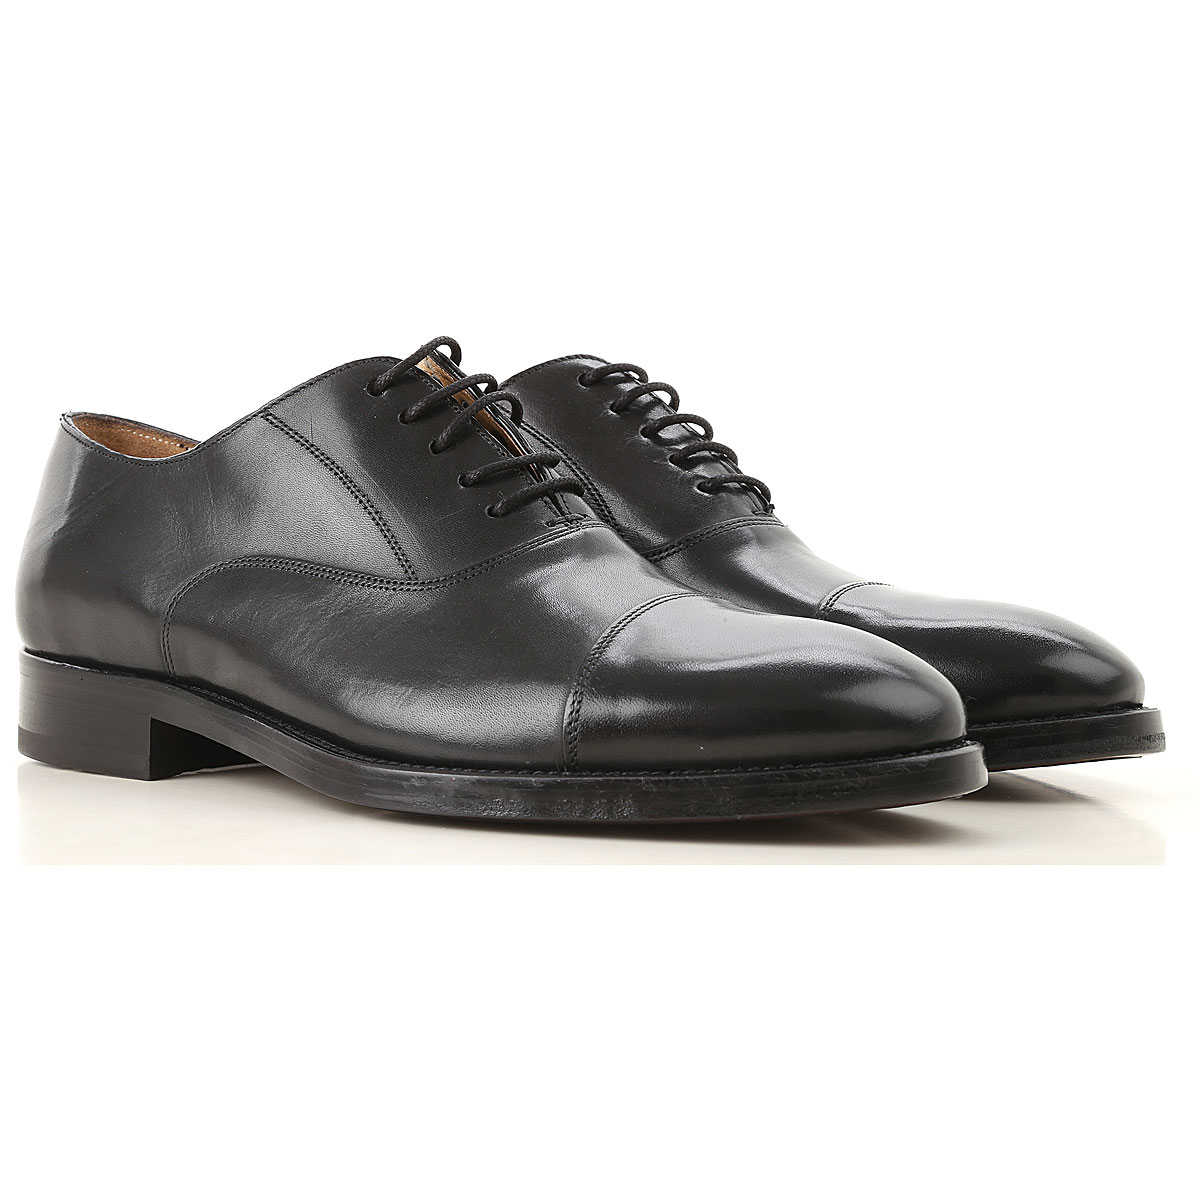 Brecos Lace Up Shoes for Men Oxfords Derbies and Brogues On Sale SE - GOOFASH